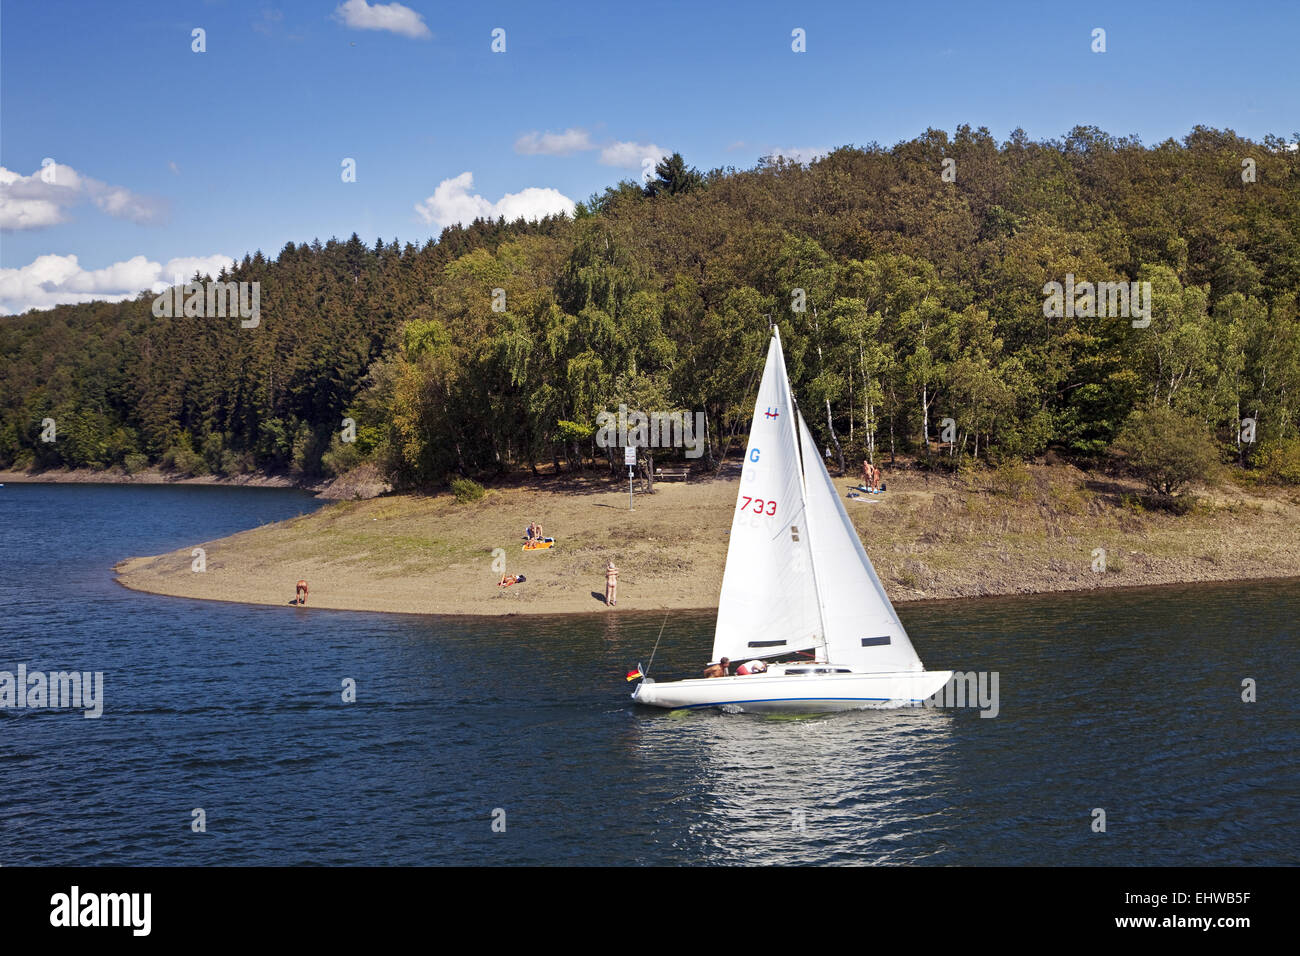 Sailboat on the Bigge in Germany. - Stock Image